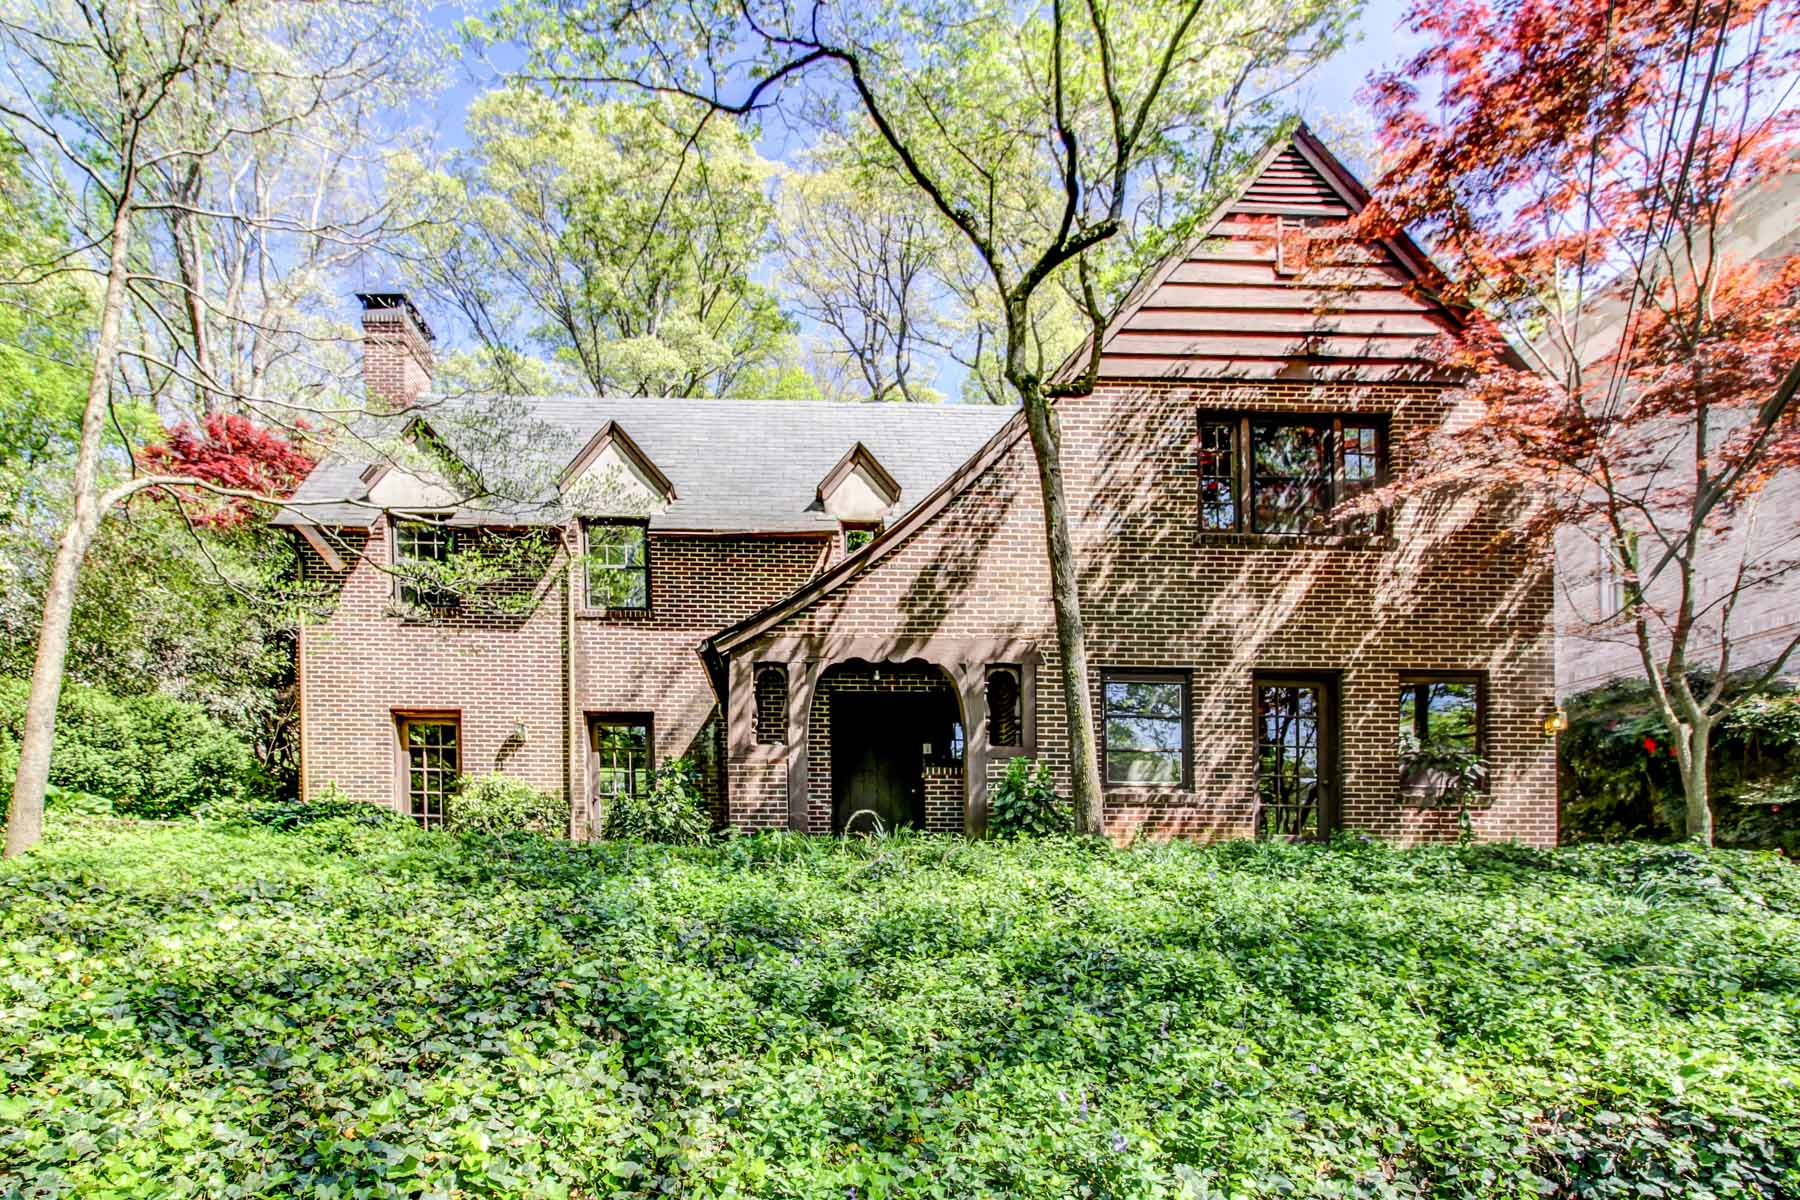 獨棟家庭住宅 為 出售 在 Historic 1924 Custom Built Tudor on estate lot with authentic Tudor architecture 941 Clifton Road Druid Hills, Atlanta, 喬治亞州, 30307 美國